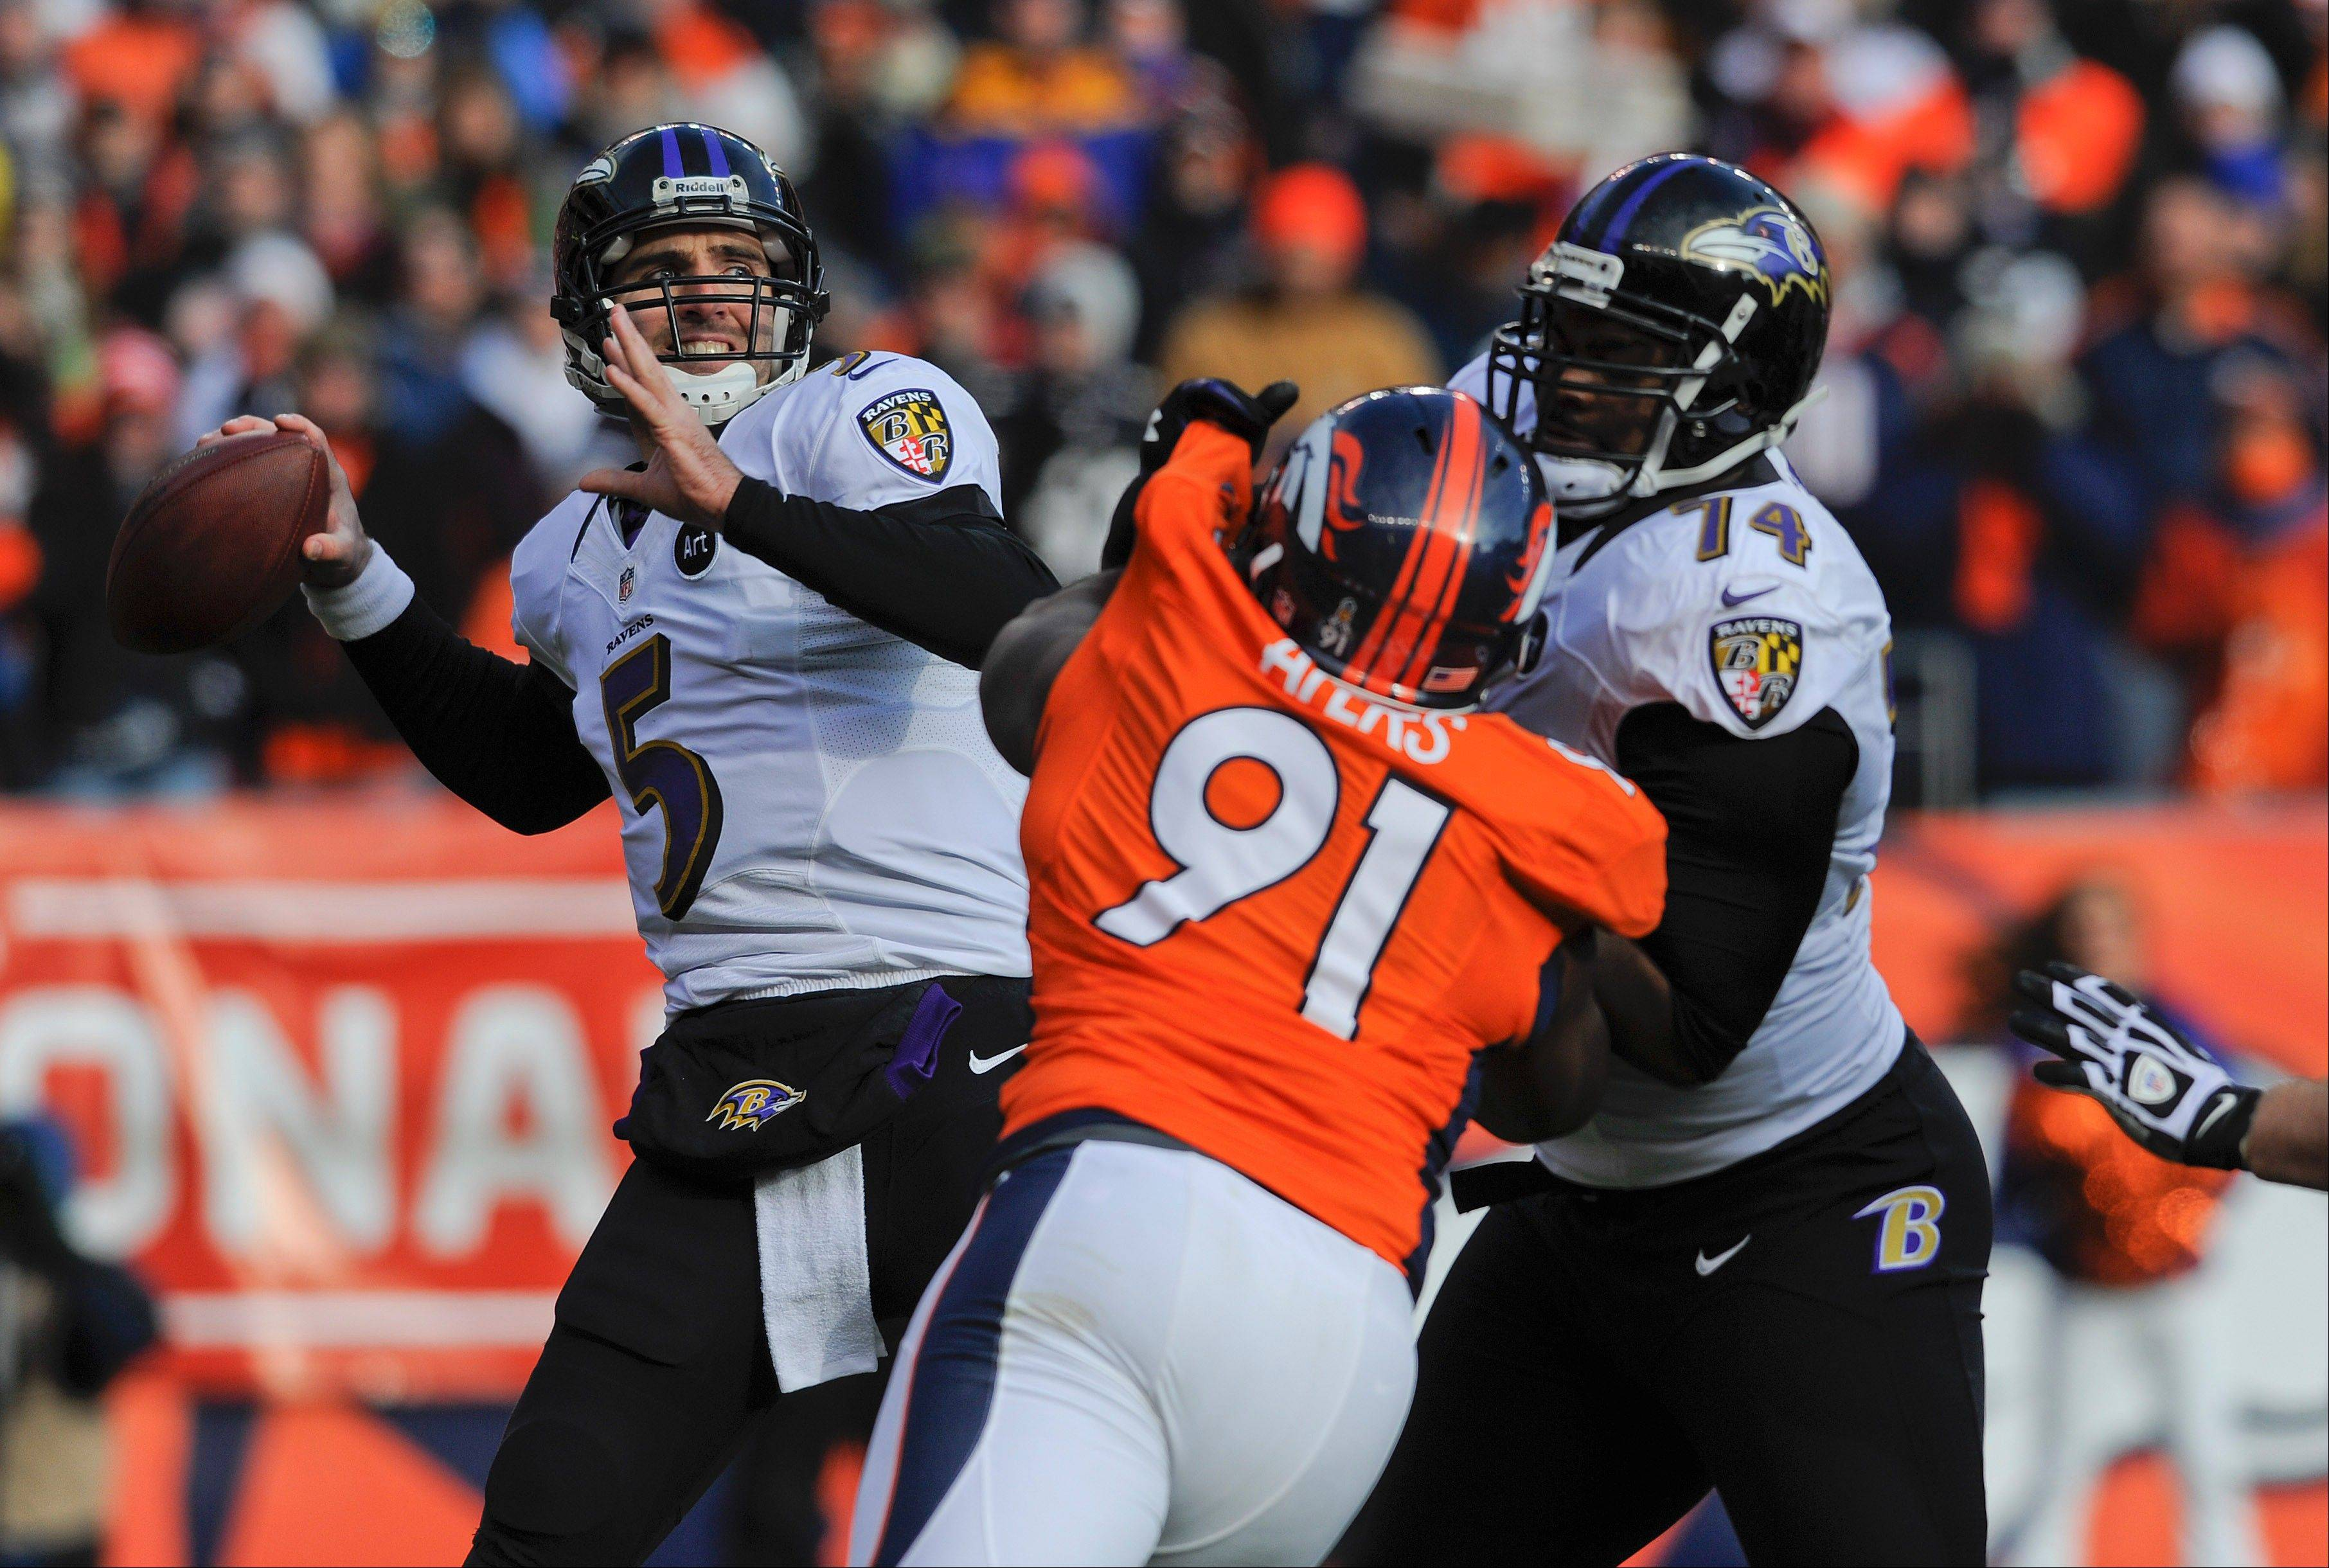 Baltimore Ravens quarterback Joe Flacco credits his offensive line for the team's postseason success this season. Here right tackle Michael Oher (74) blocks Denver Broncos defensive end Robert Ayers.